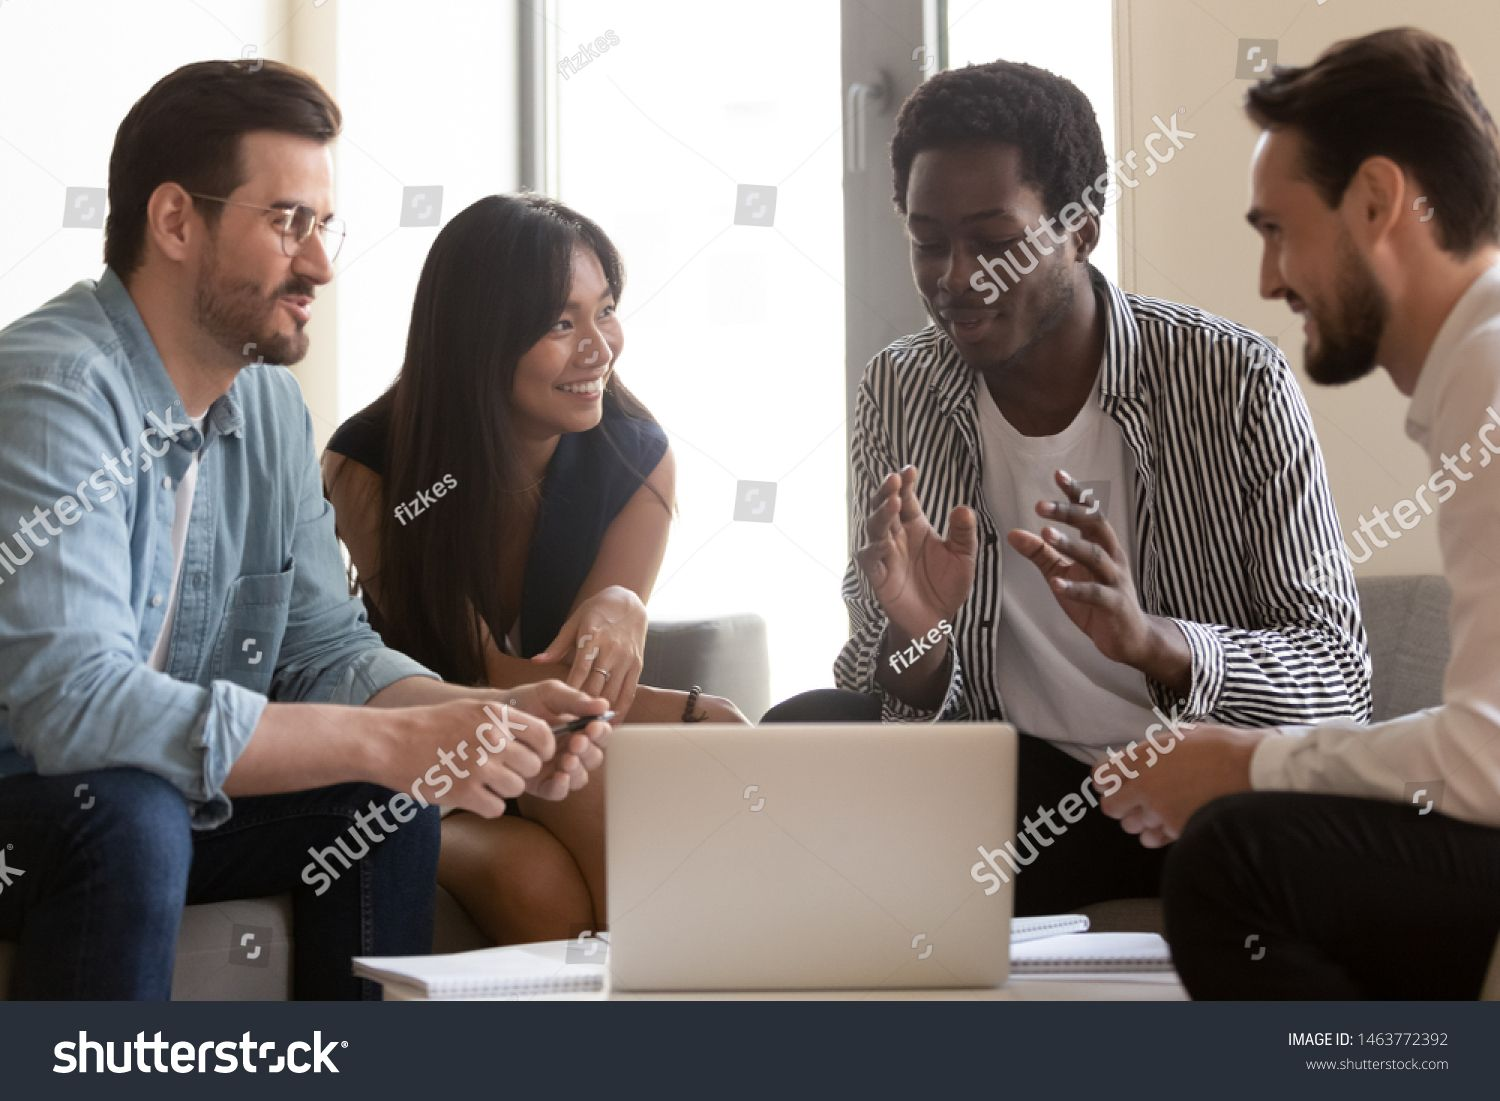 Multiethnic business team listen to african leader mentor coach explain online strategy with laptop diverse workers group brainstorm talking gathered in office work toget...